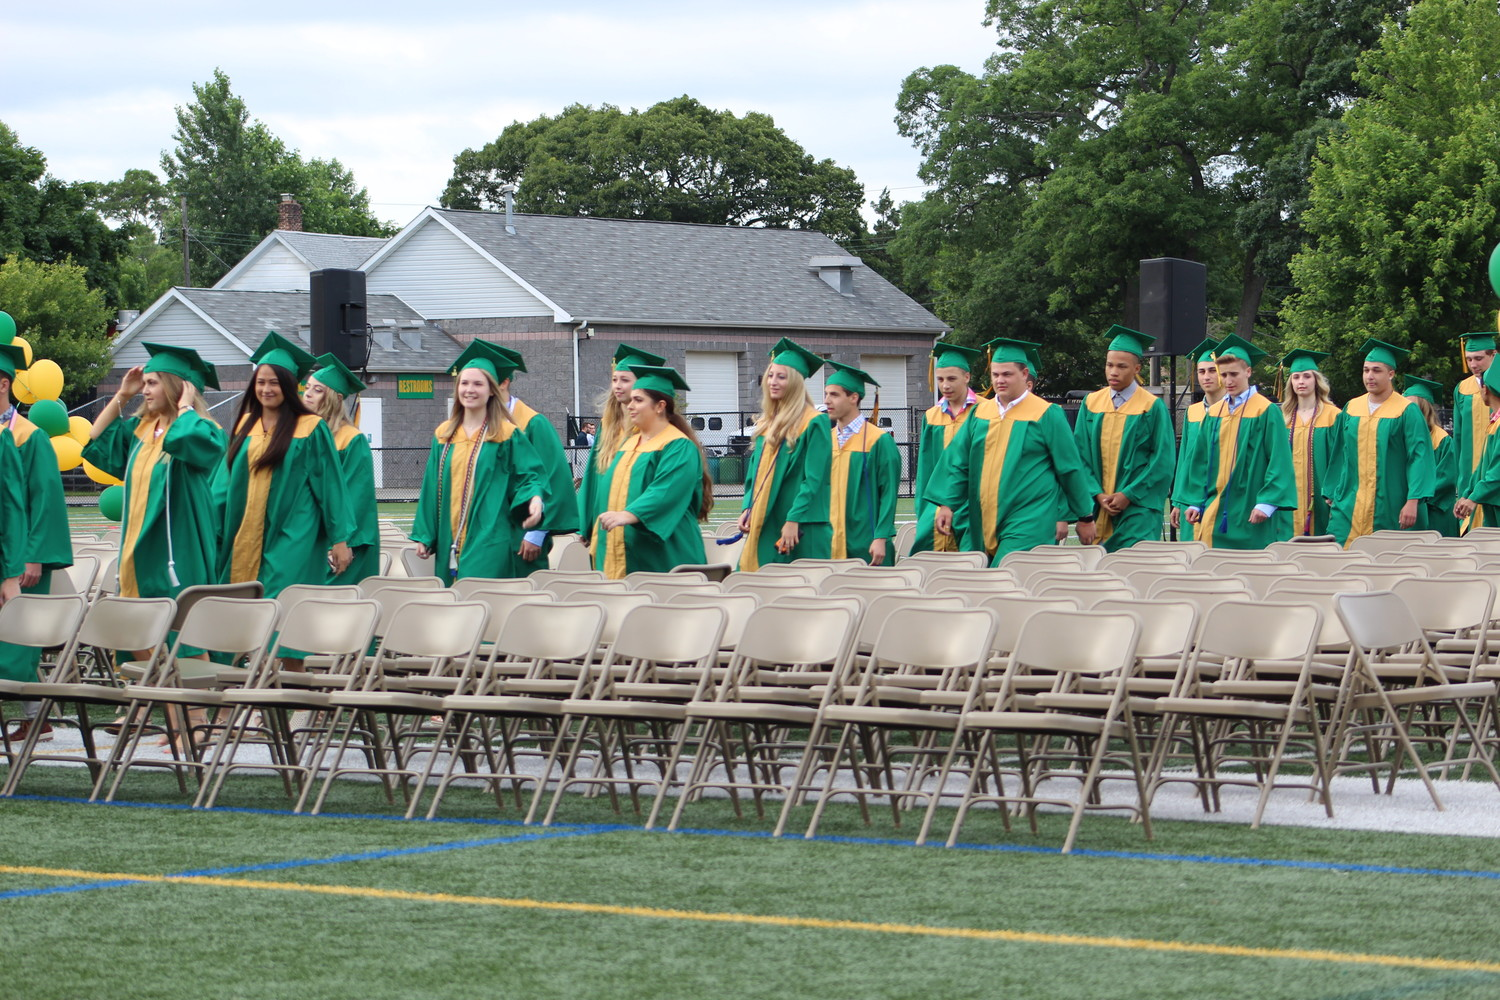 The senior class walked across the field at Marion Street School to take their seats at graduation on June 22.